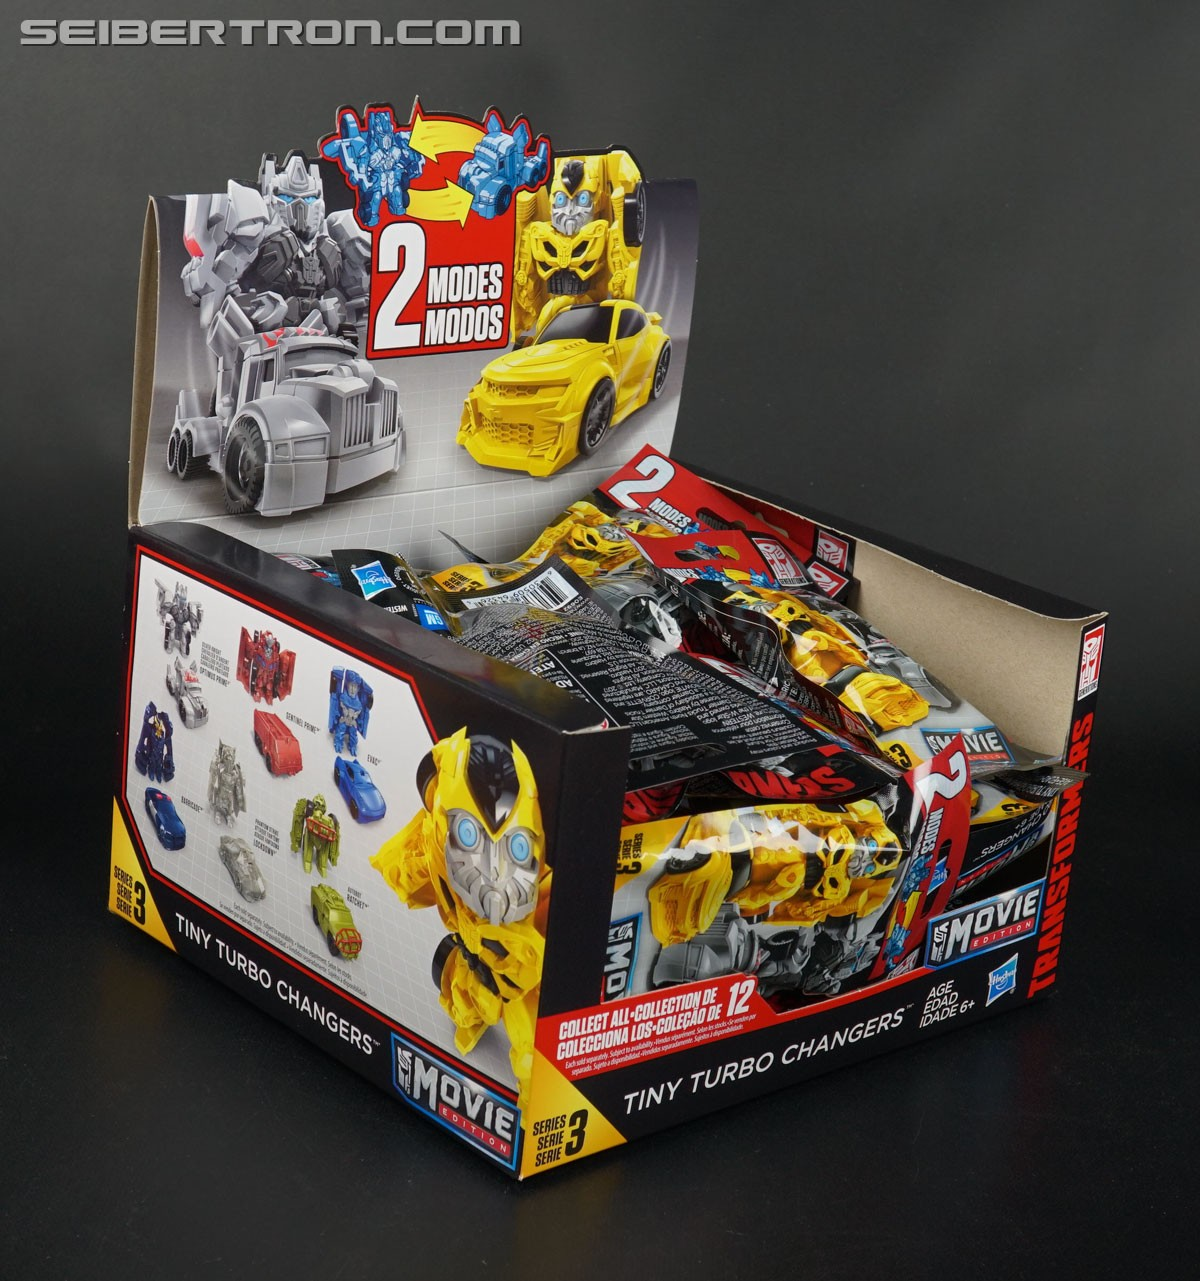 Transformers Toy News On Seibertron.com